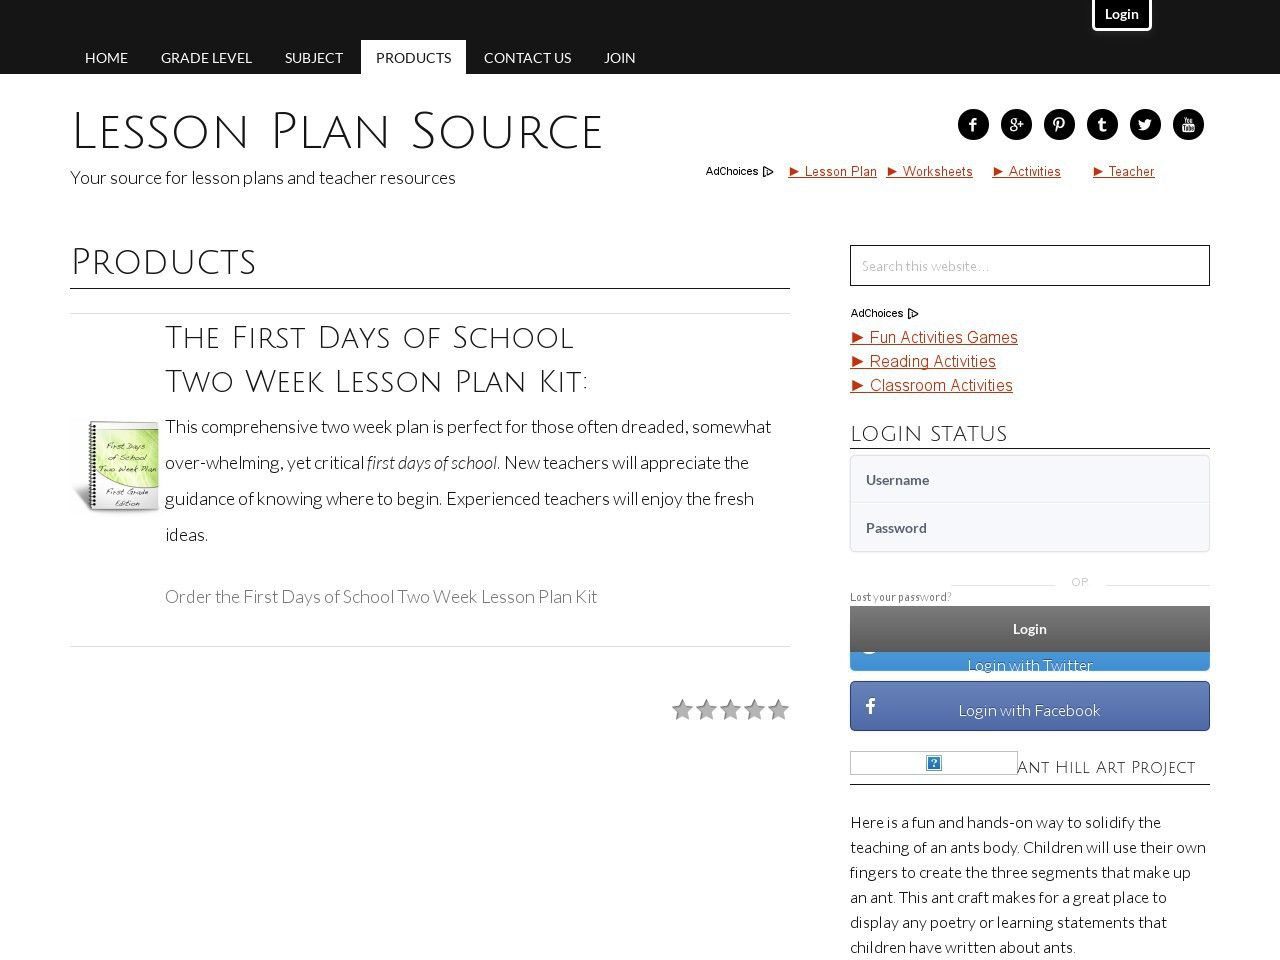 [Get] Lesson Plan Source | Teacher Resources - http://www.vnulab.be/lab-review/lesson-plan-source-teacher-resources ,http://s.wordpress.com/mshots/v1/http%3A%2F%2Fforexrbot.lpsproduct.hop.clickbank.net